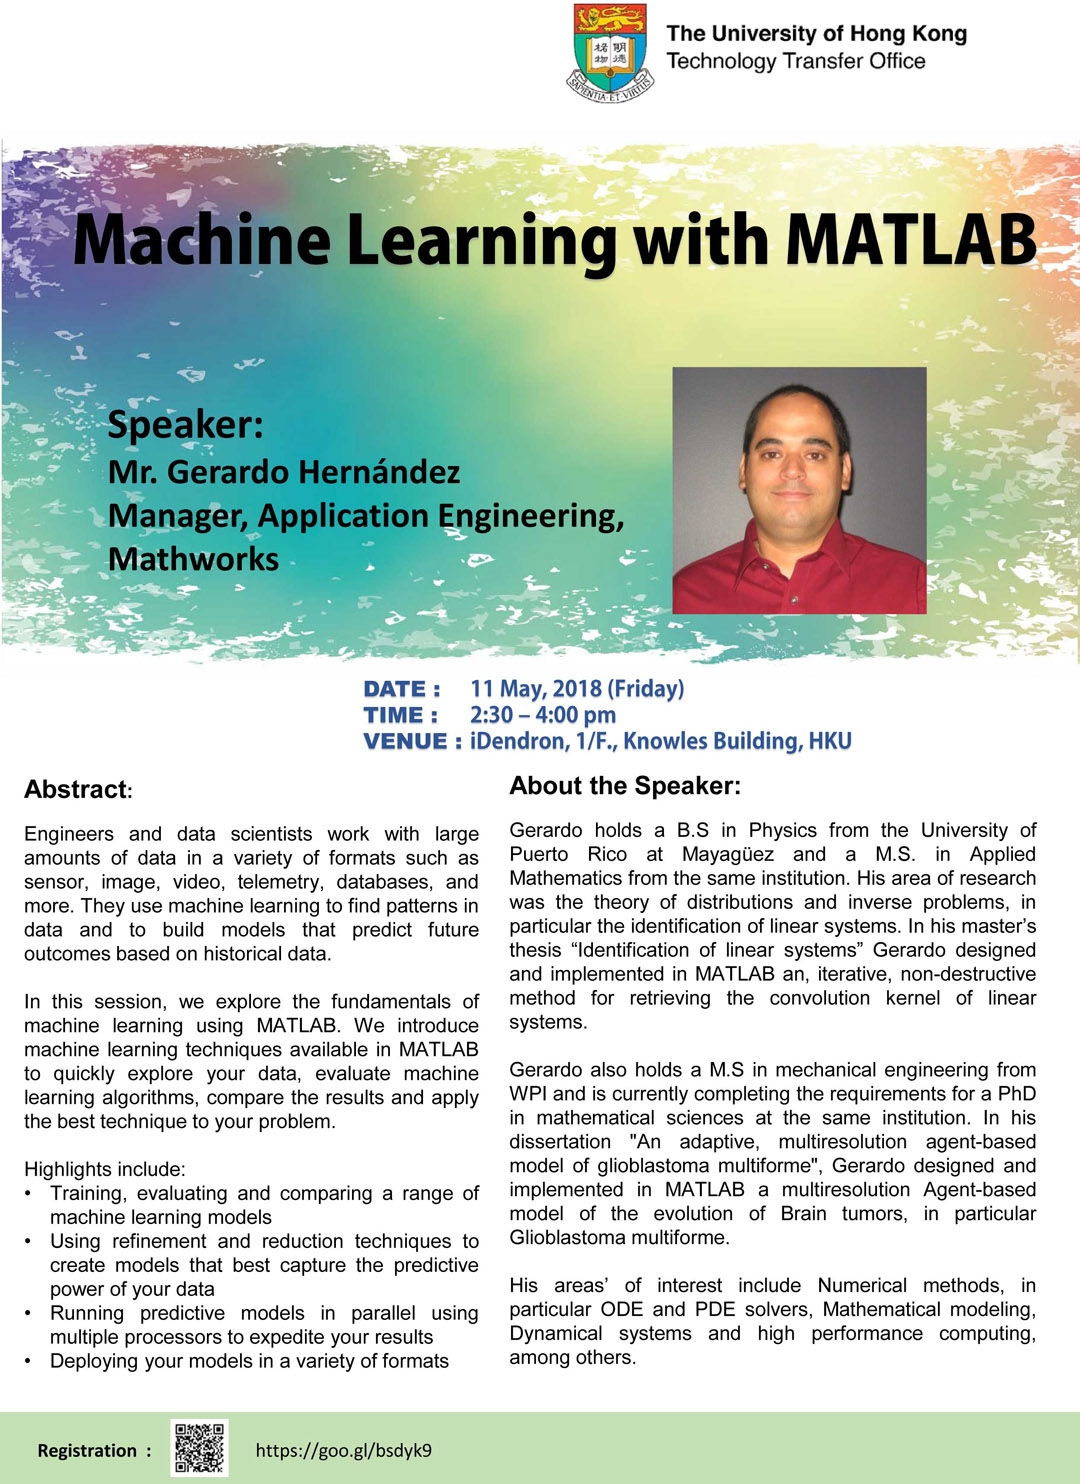 Machine Learning with MATLAB by Mr  Gerardo Hernández